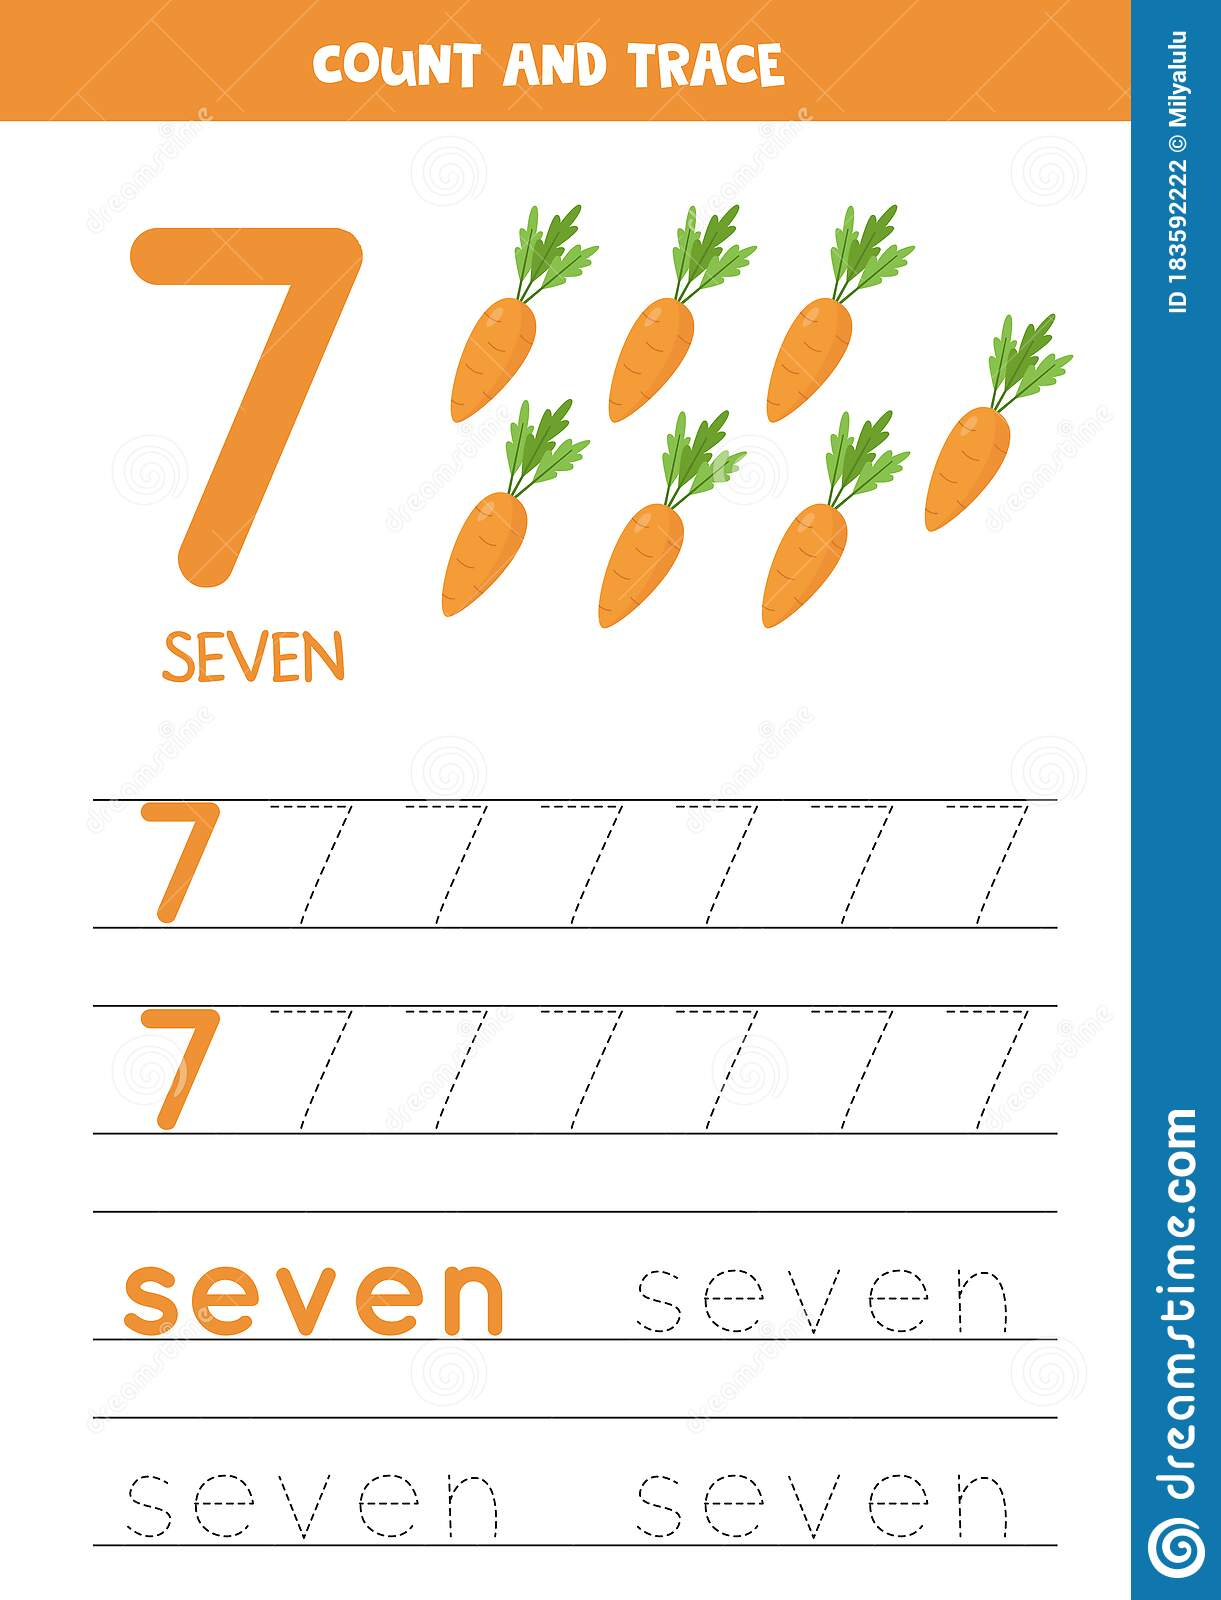 Tracing The Word Seven And The Number 7 Cartoon Carrots